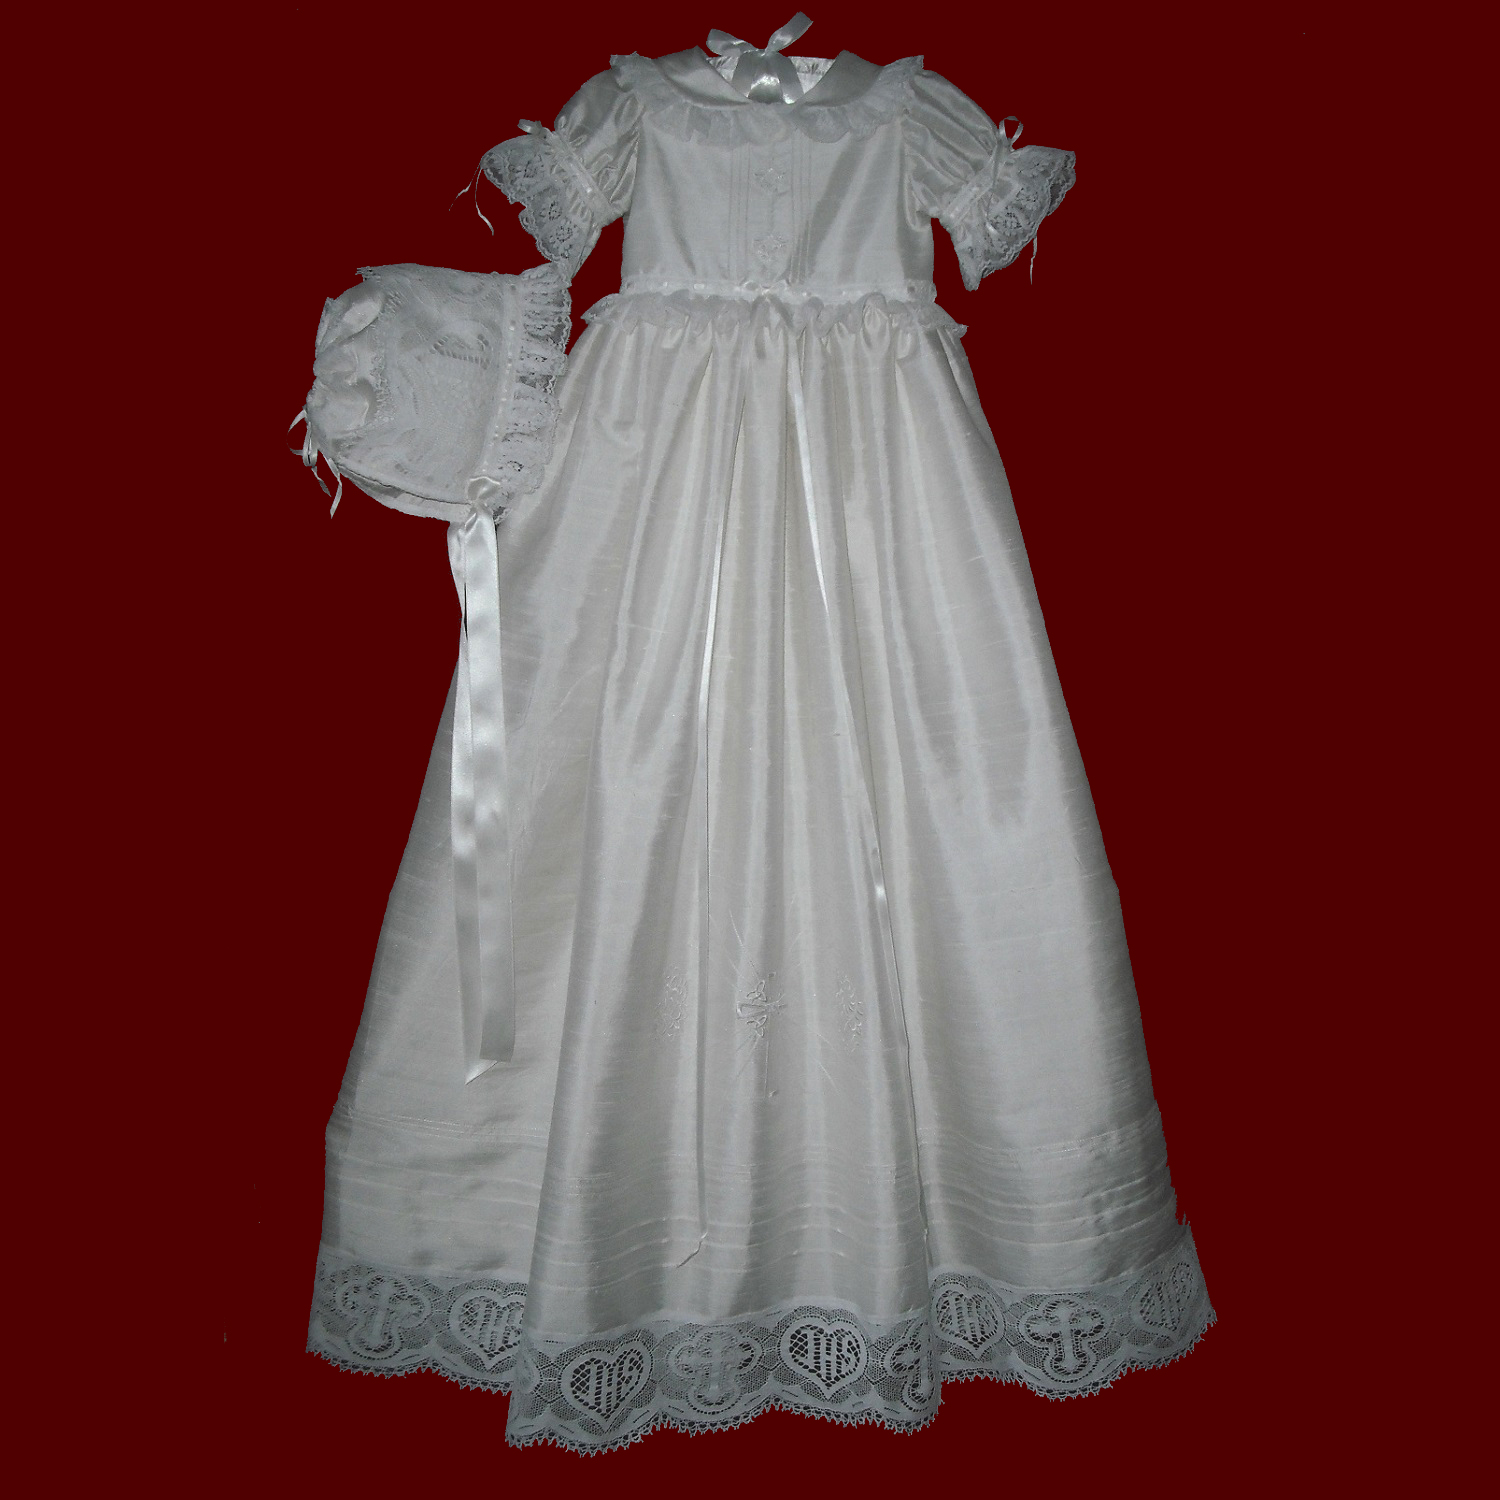 Girls Christening Gown With Heart/Cross Victorian Lace & Fleur-de-lis Embroidery, Slip & Bonnet